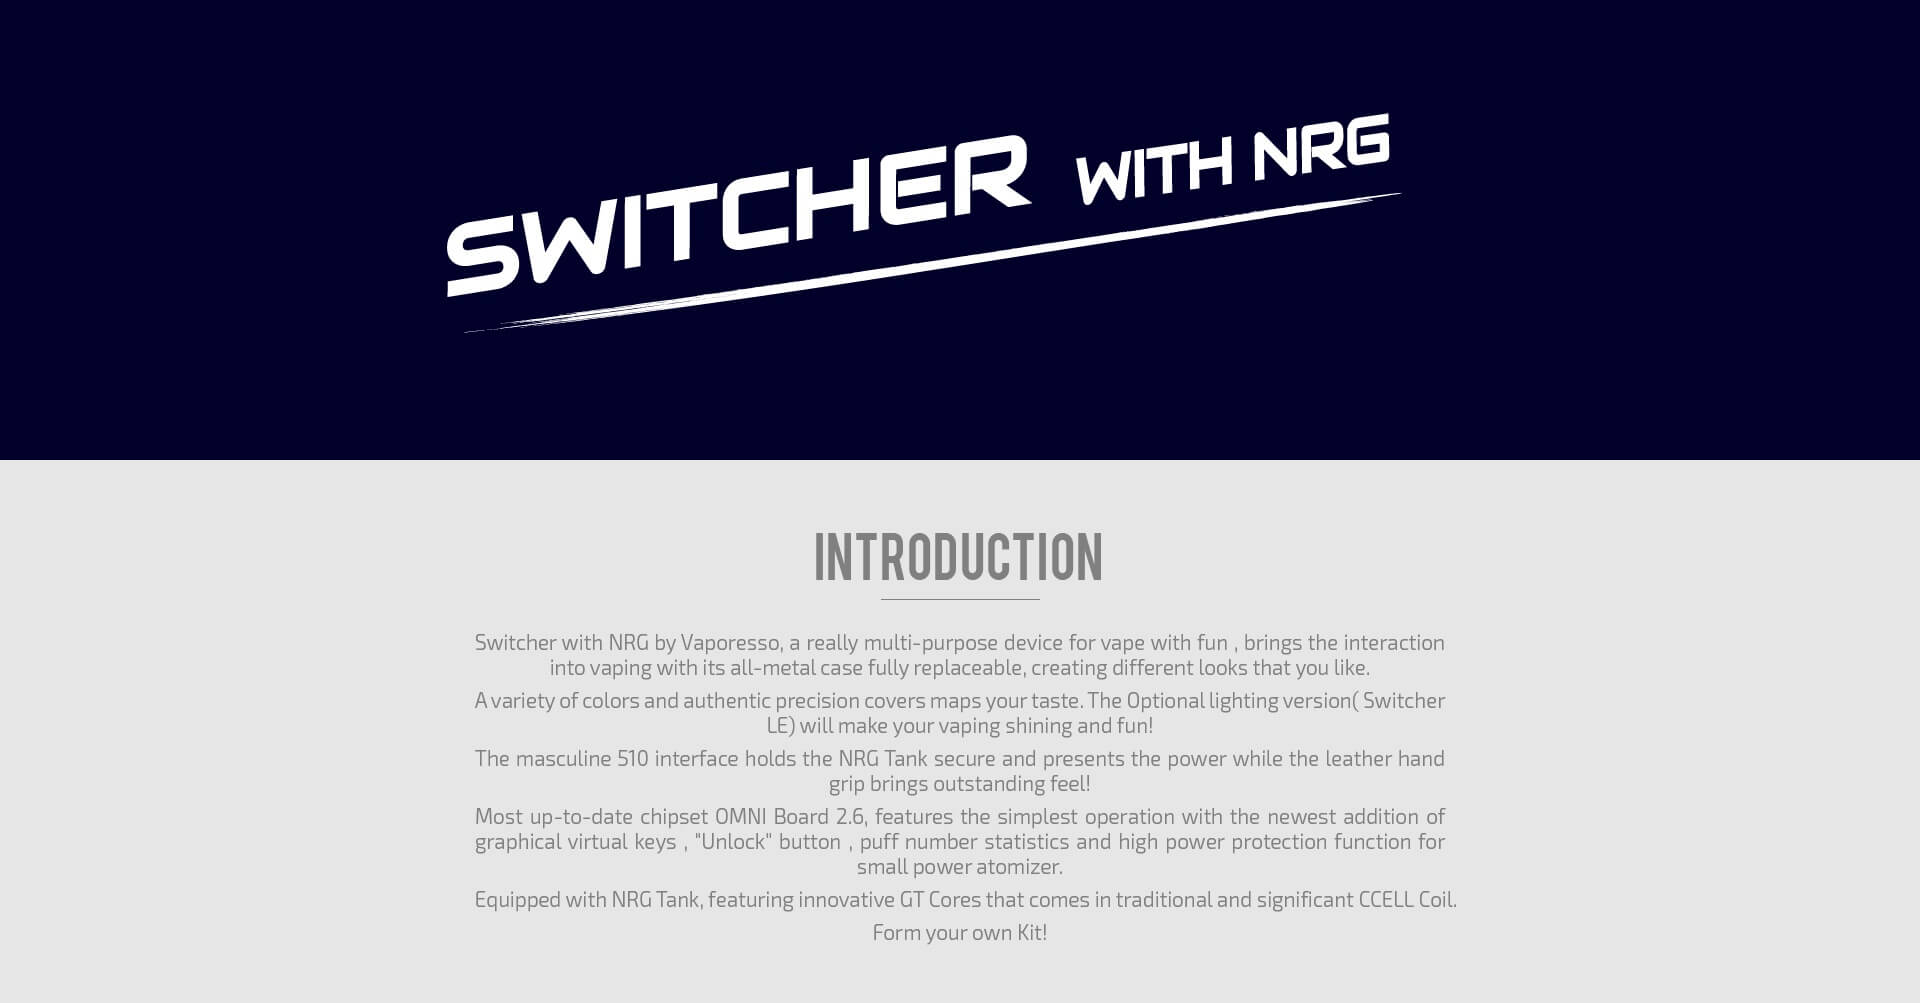 switcher_with_nrg_2.jpg